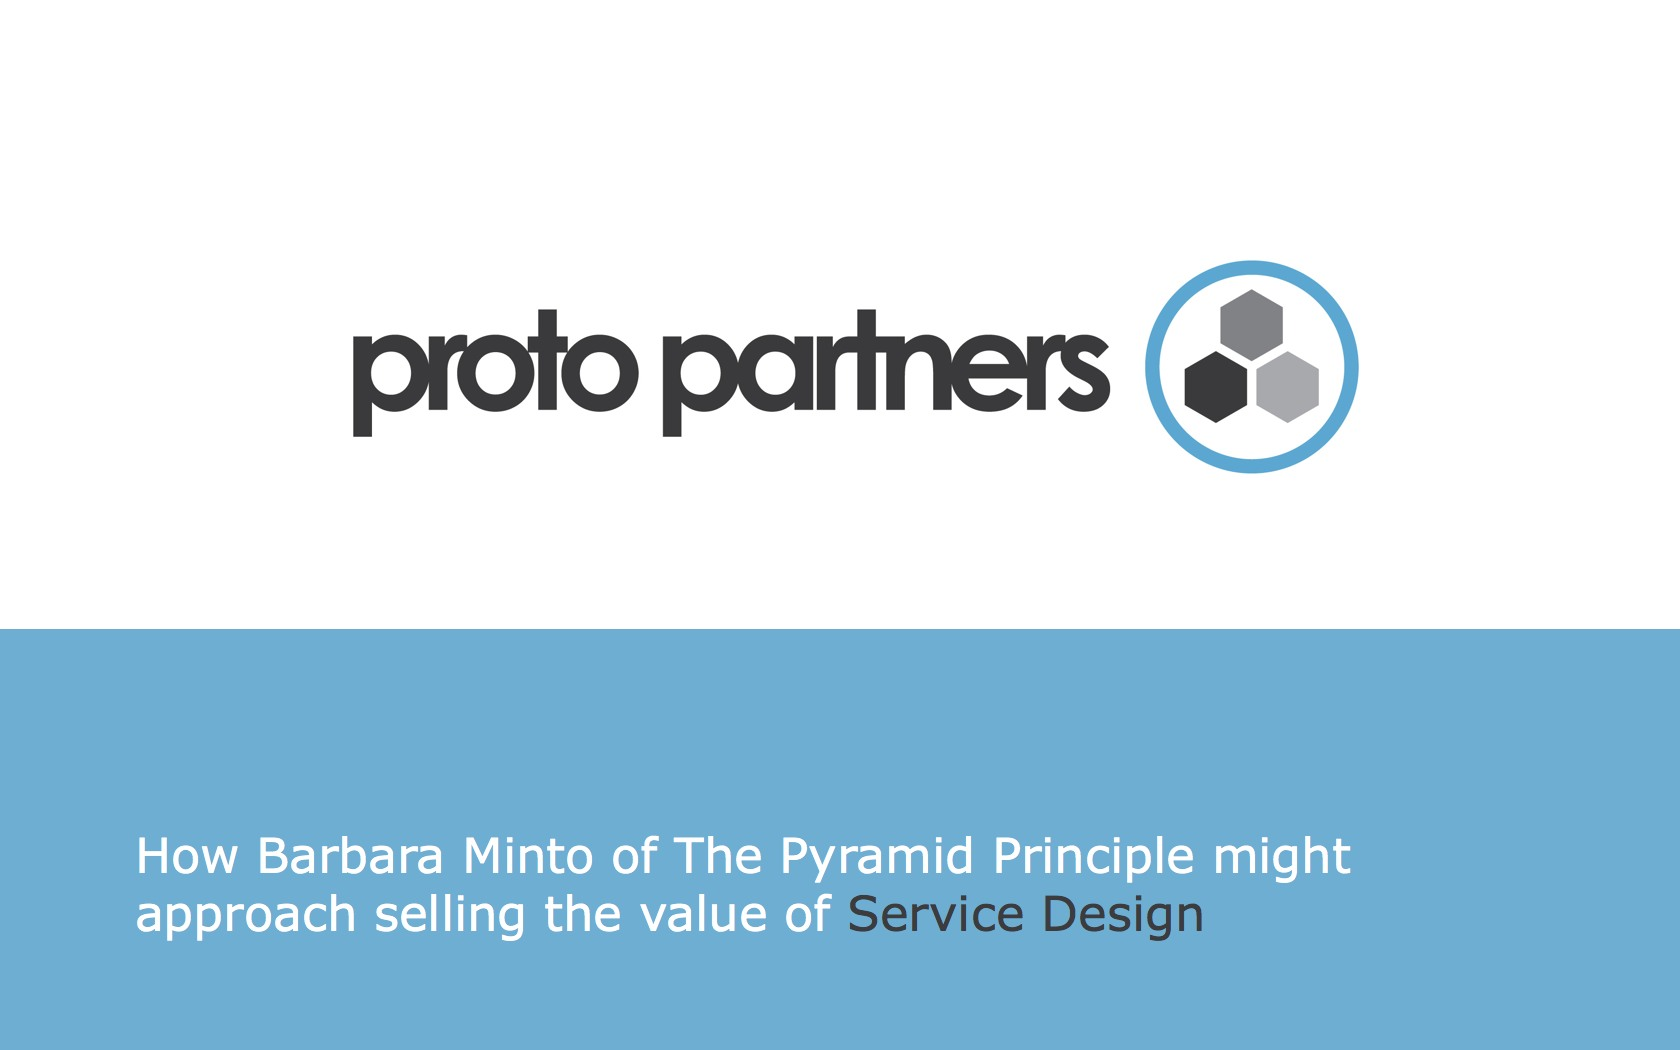 title slide of presentation on How Barbara Minto of The Pyramid Principle might approach selling the value of Service Design